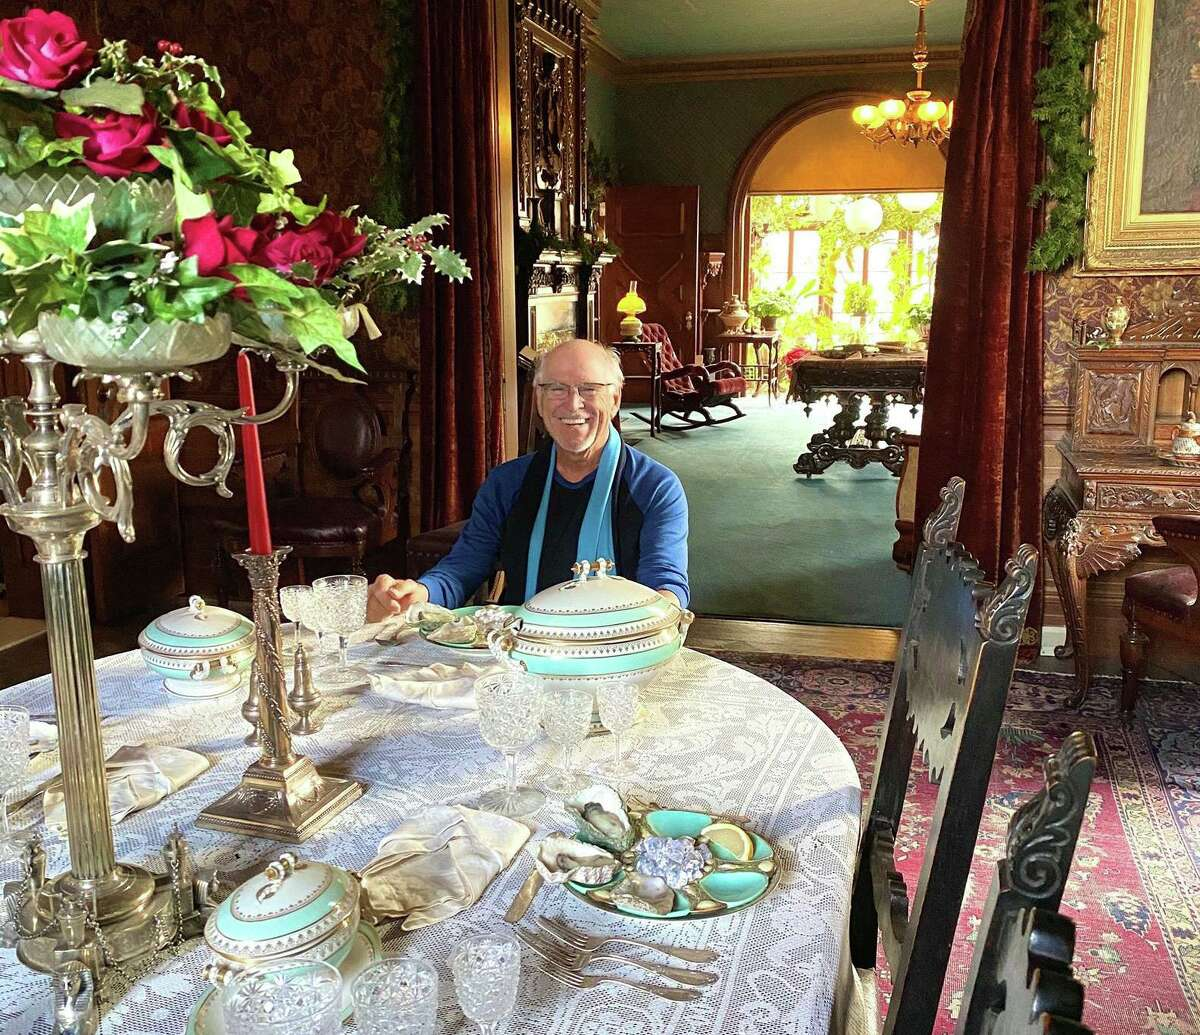 Jimmy Buffett, a devoted Twainiac, communes with his favorite author during a visit this year to The Mark Twain House & Museum in Hartford. Buffett will be one of several featured guests during the star-studded lineup for